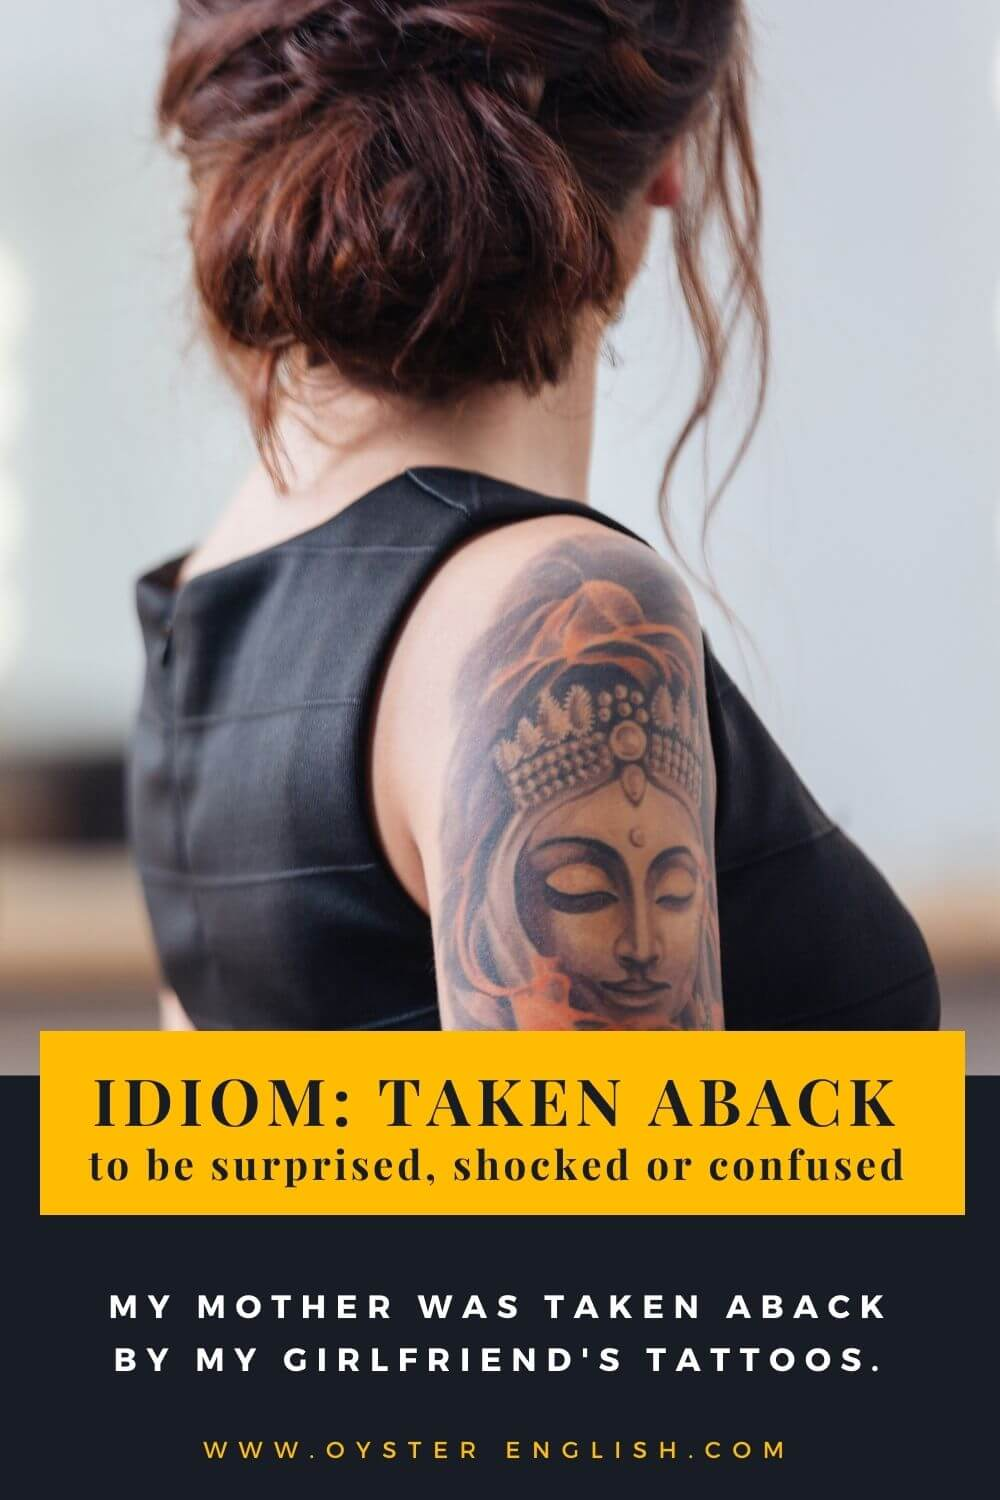 Picture of woman wearing a sleeveless dress with a large tattoo covering her harm to illustrate the idiom,